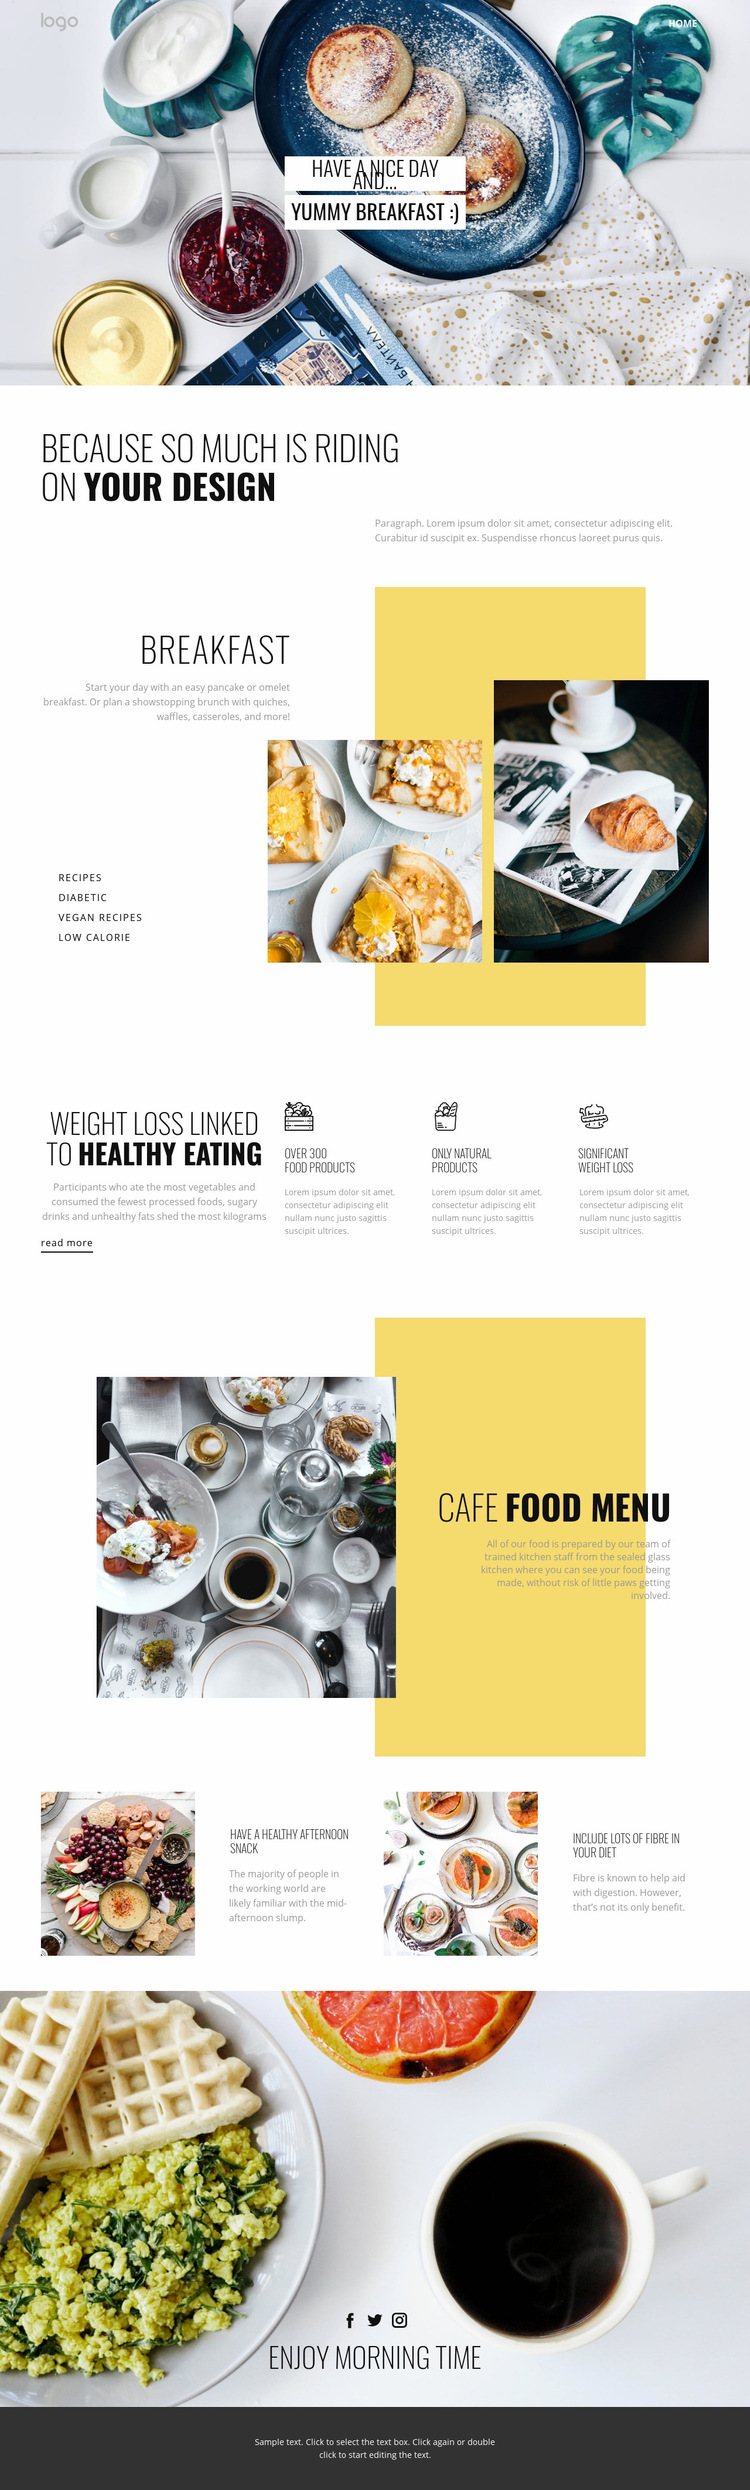 Healthy way of eating food Web Page Design